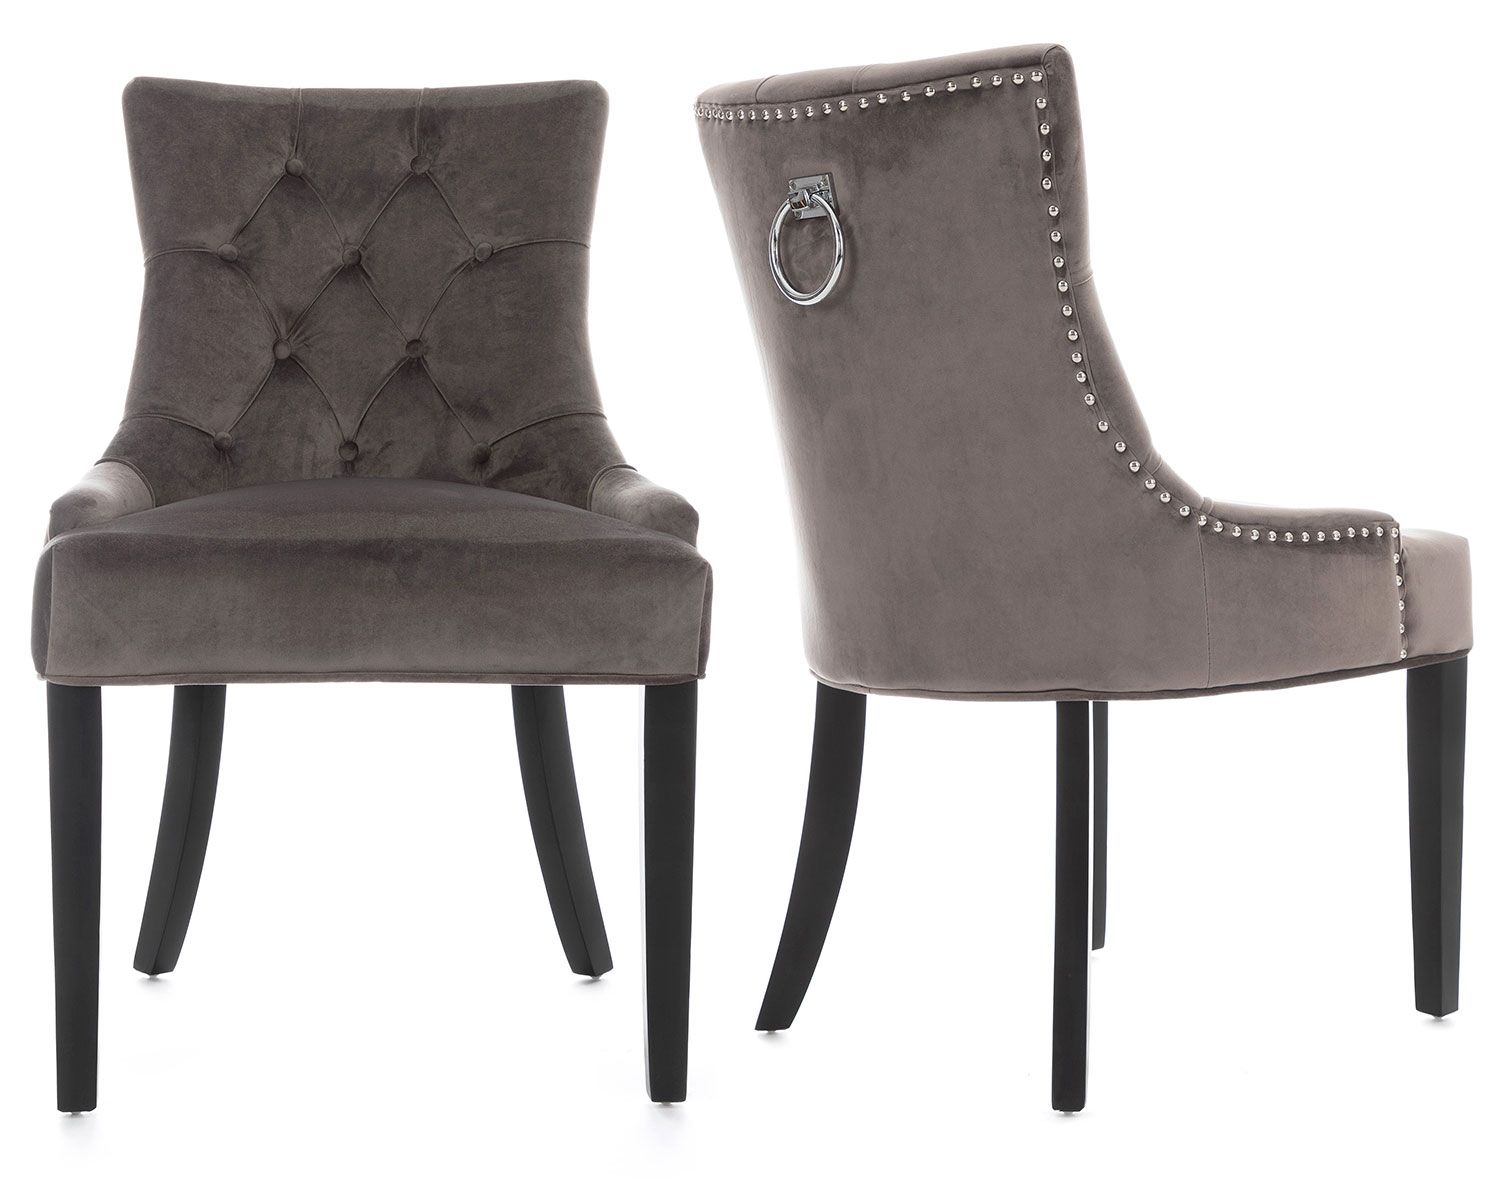 Verona Dining Chair In Grey Velvet With Chrome Knocker And Black